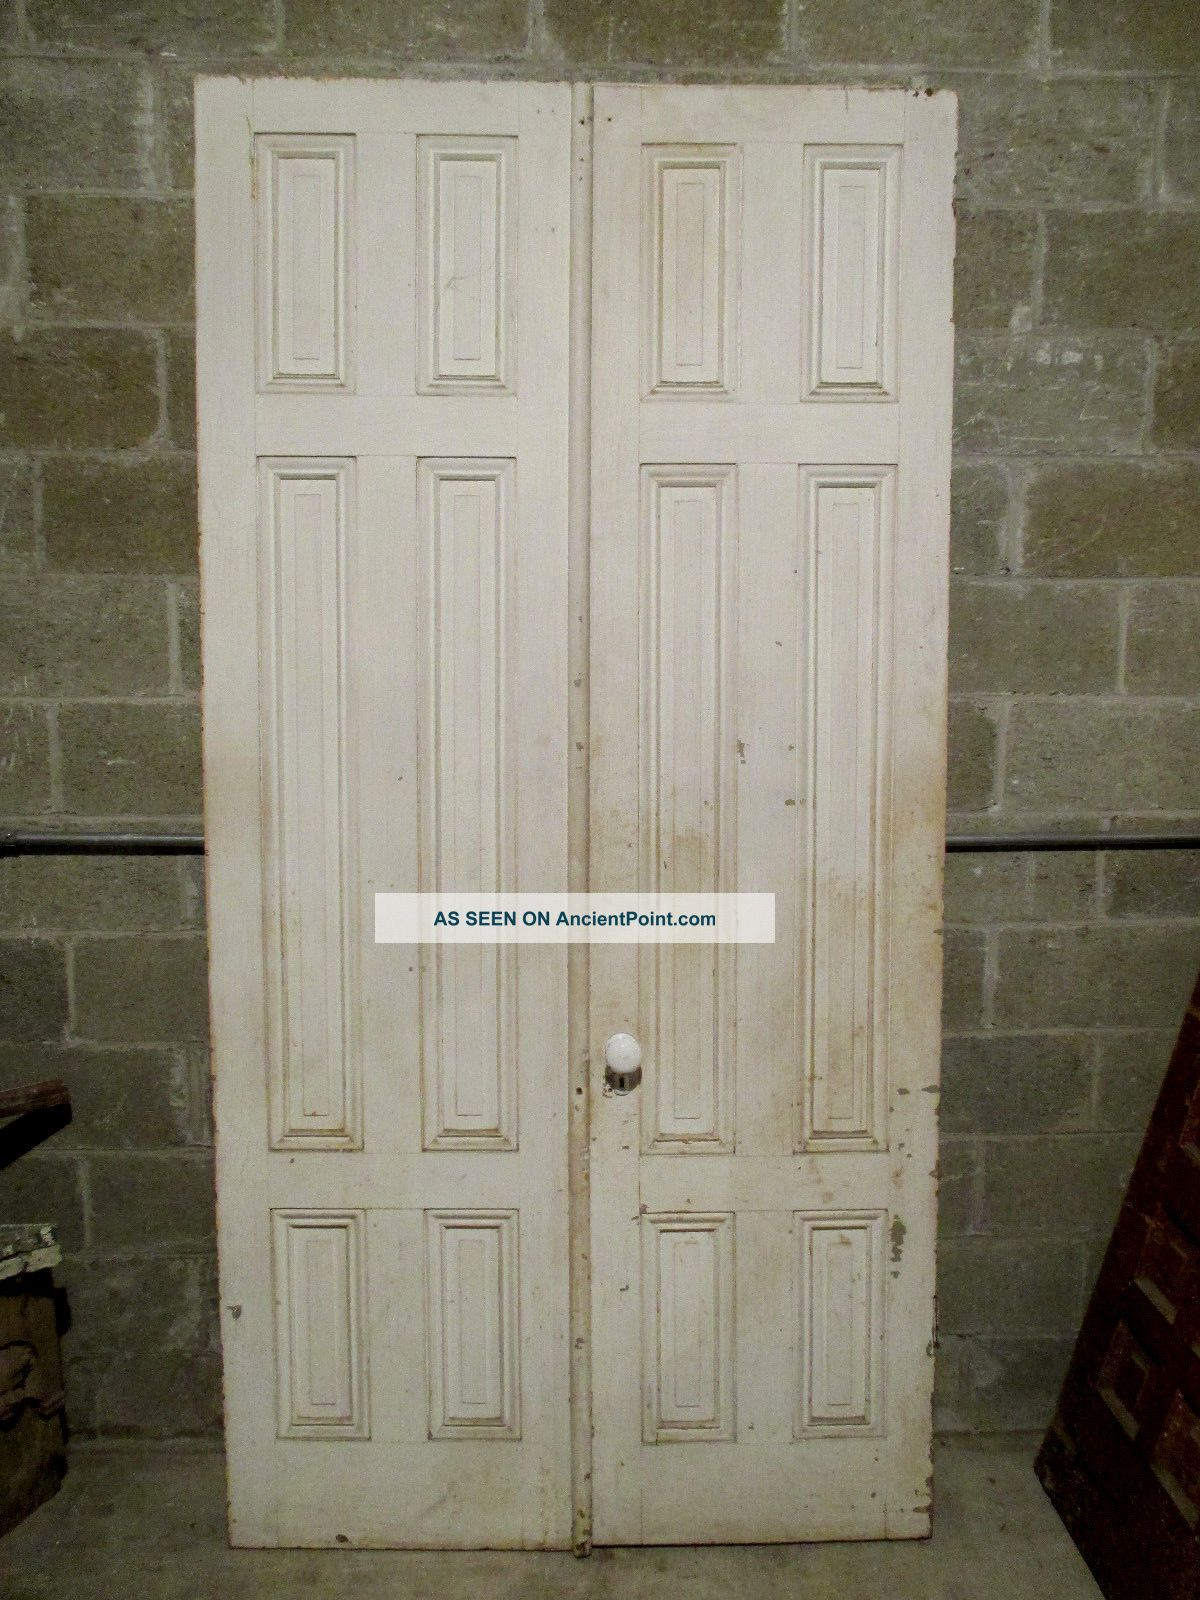 Antique Double Entrance French Doors 48 X 95 Architectural Salvage Doors photo